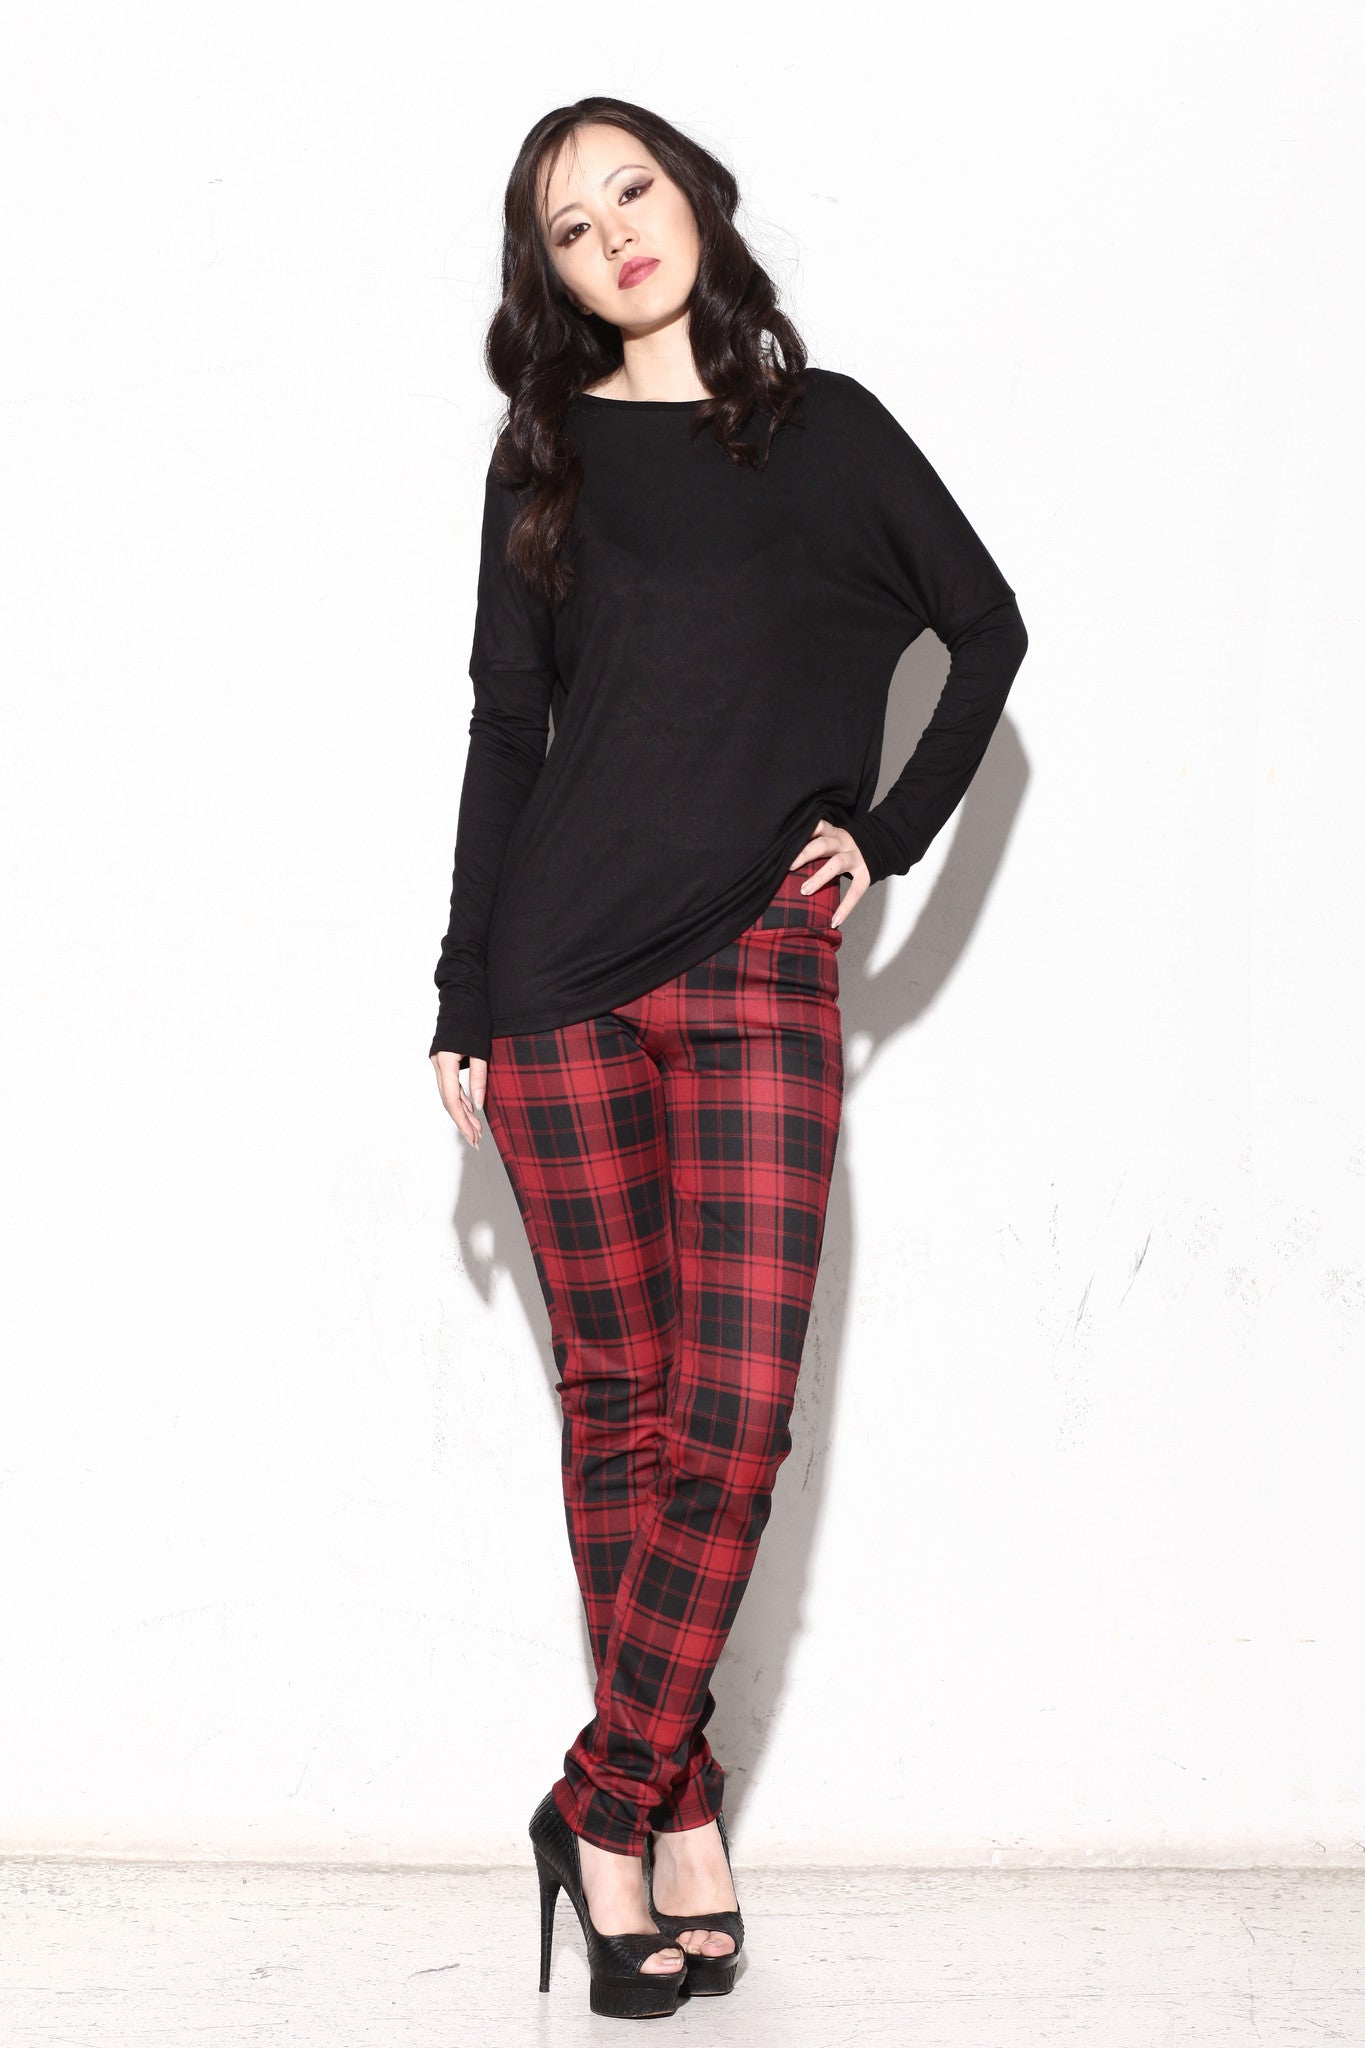 Aubrey Plaid Fitted Pants - ANA MARIA KIM  - 1